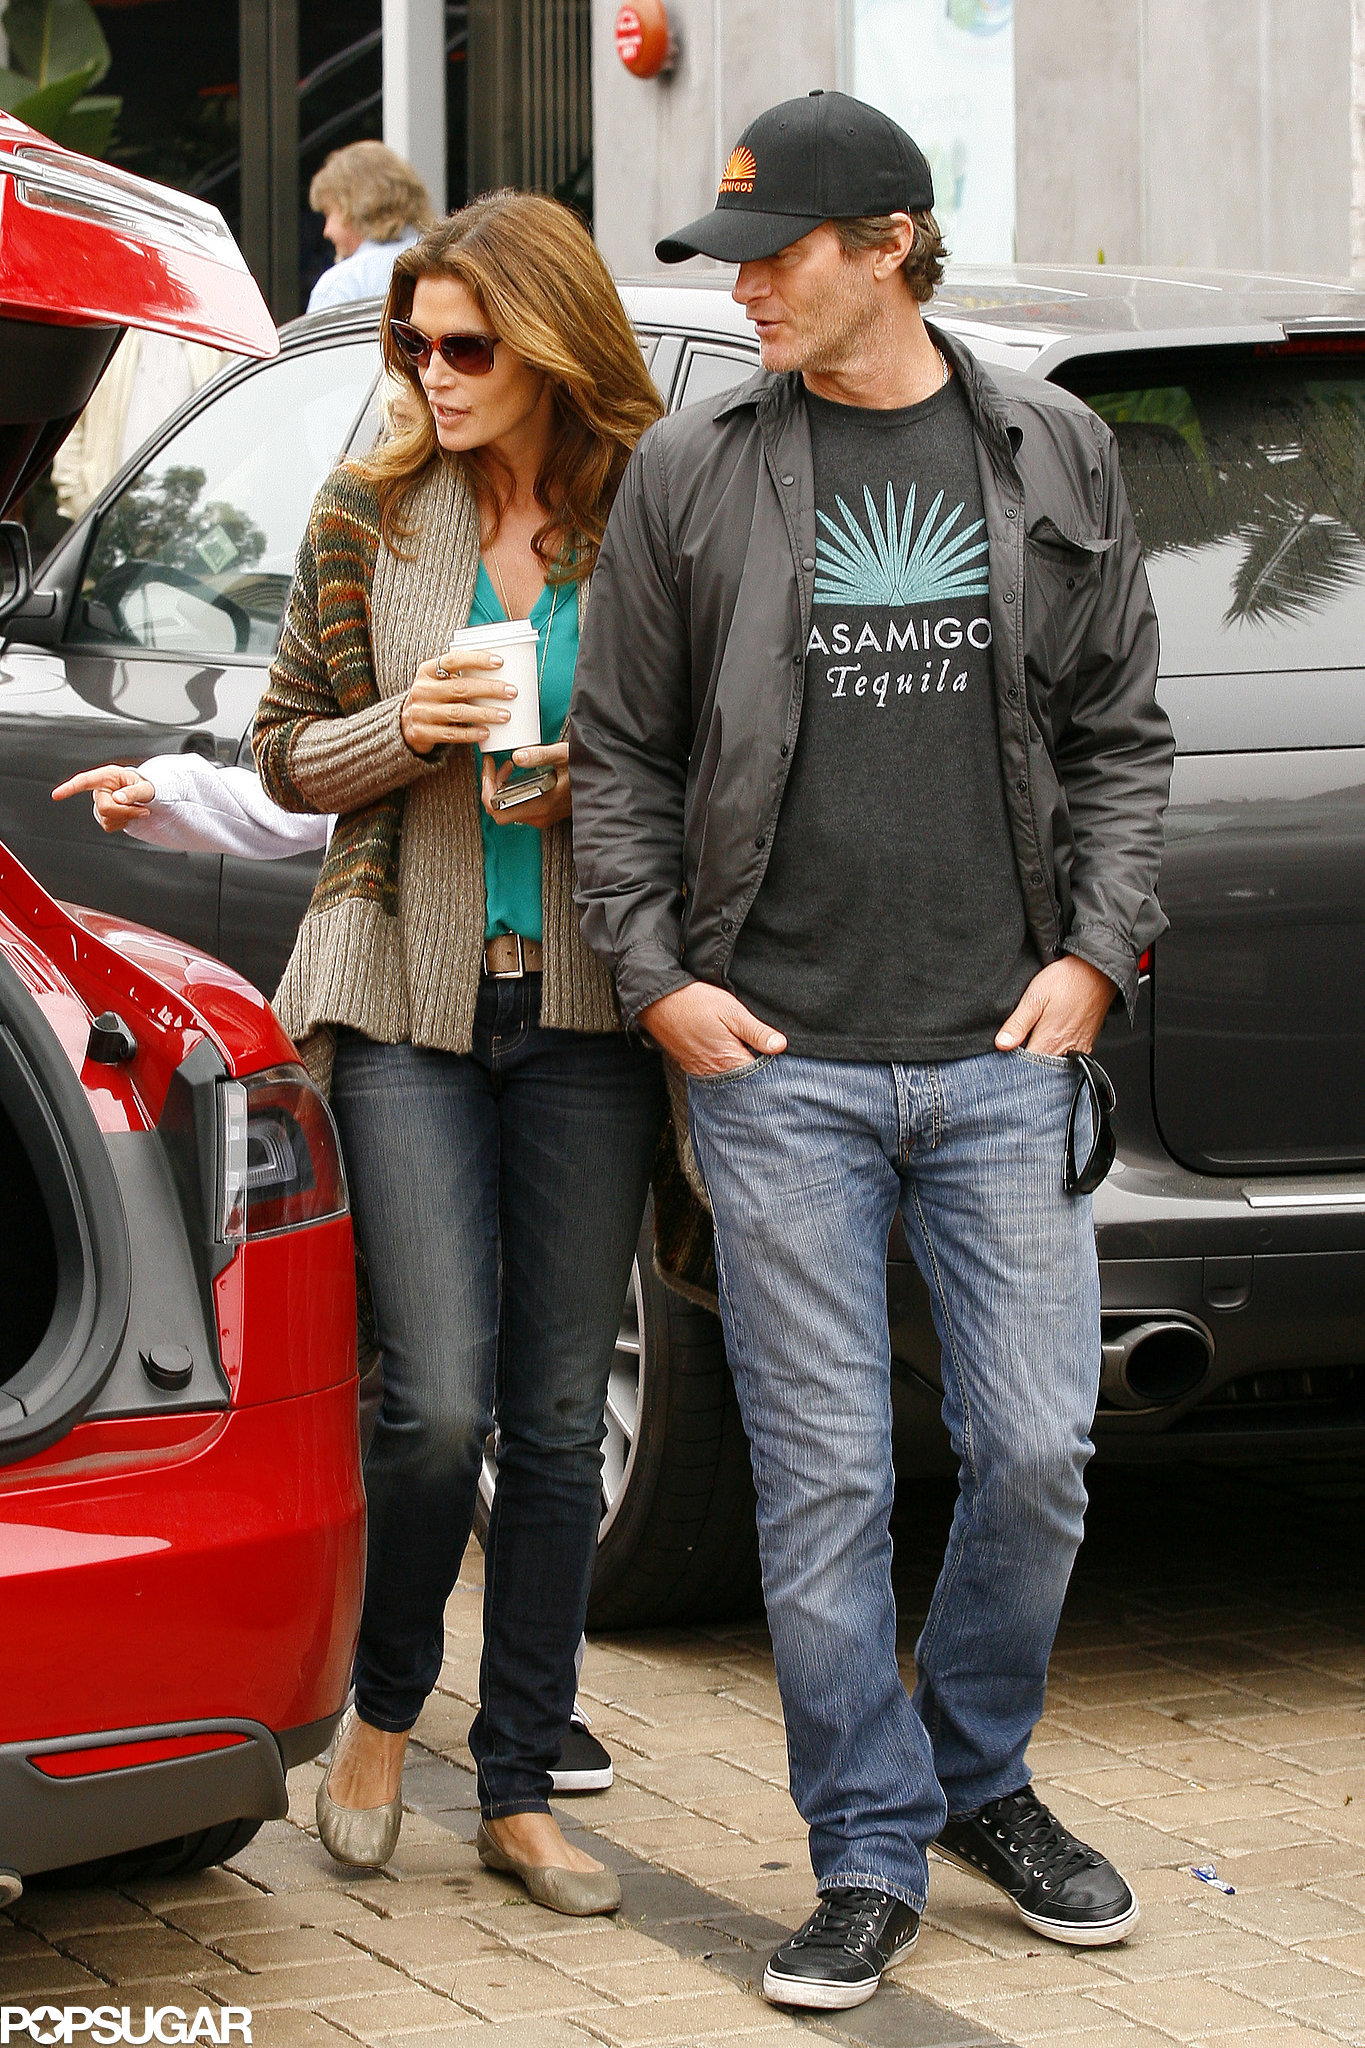 Cindy Crawford got into the St. Patrick's Day spirit sporting a green t-shirt for an outing with husband Rande Gerber in 2013.